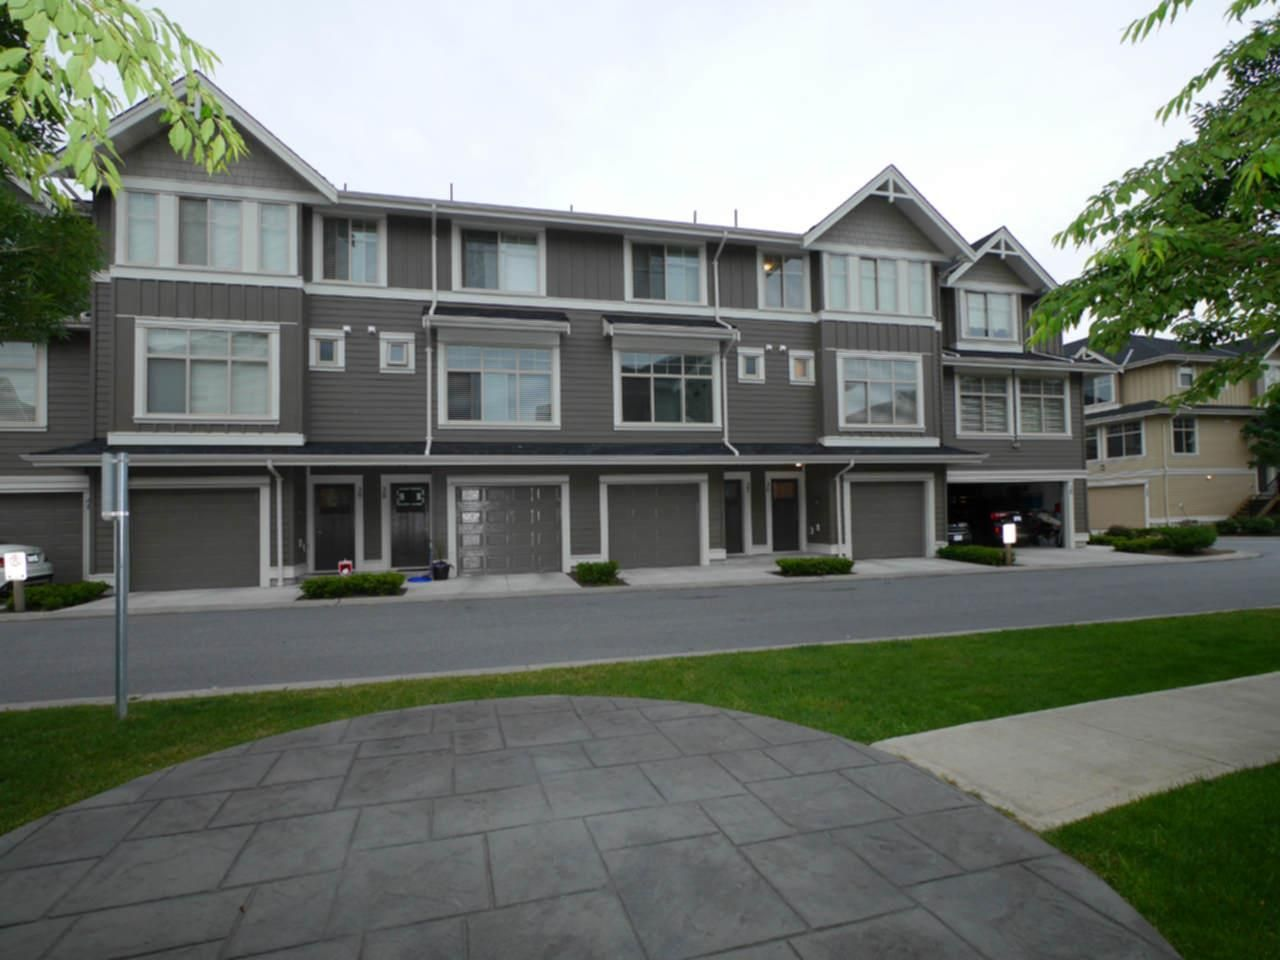 """Main Photo: 36 19525 73 Avenue in Surrey: Clayton Townhouse for sale in """"Uptown Clayton"""" (Cloverdale)  : MLS®# R2069814"""